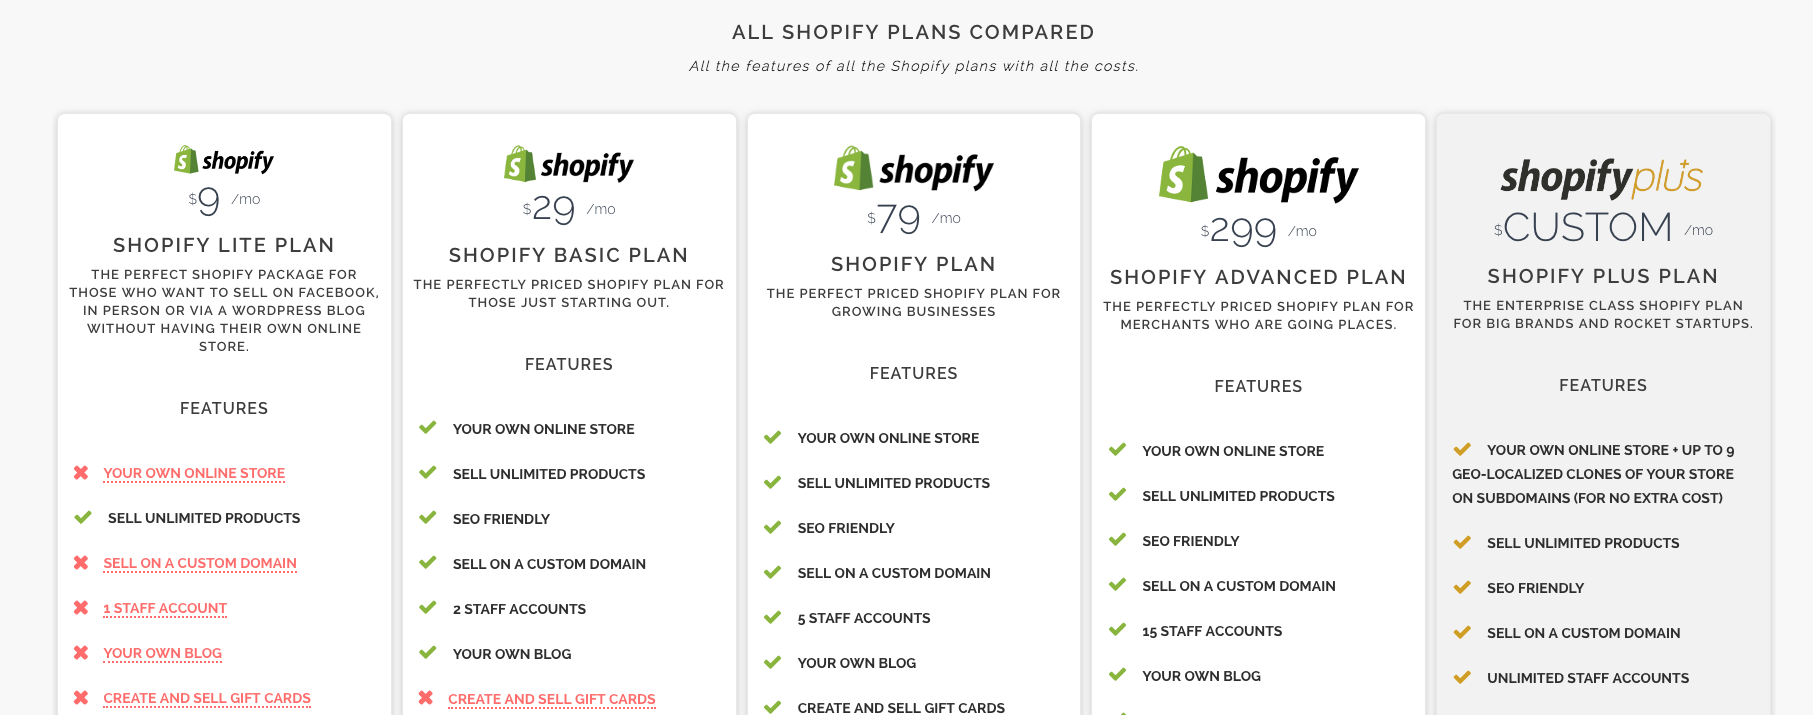 Shopify store cost and price